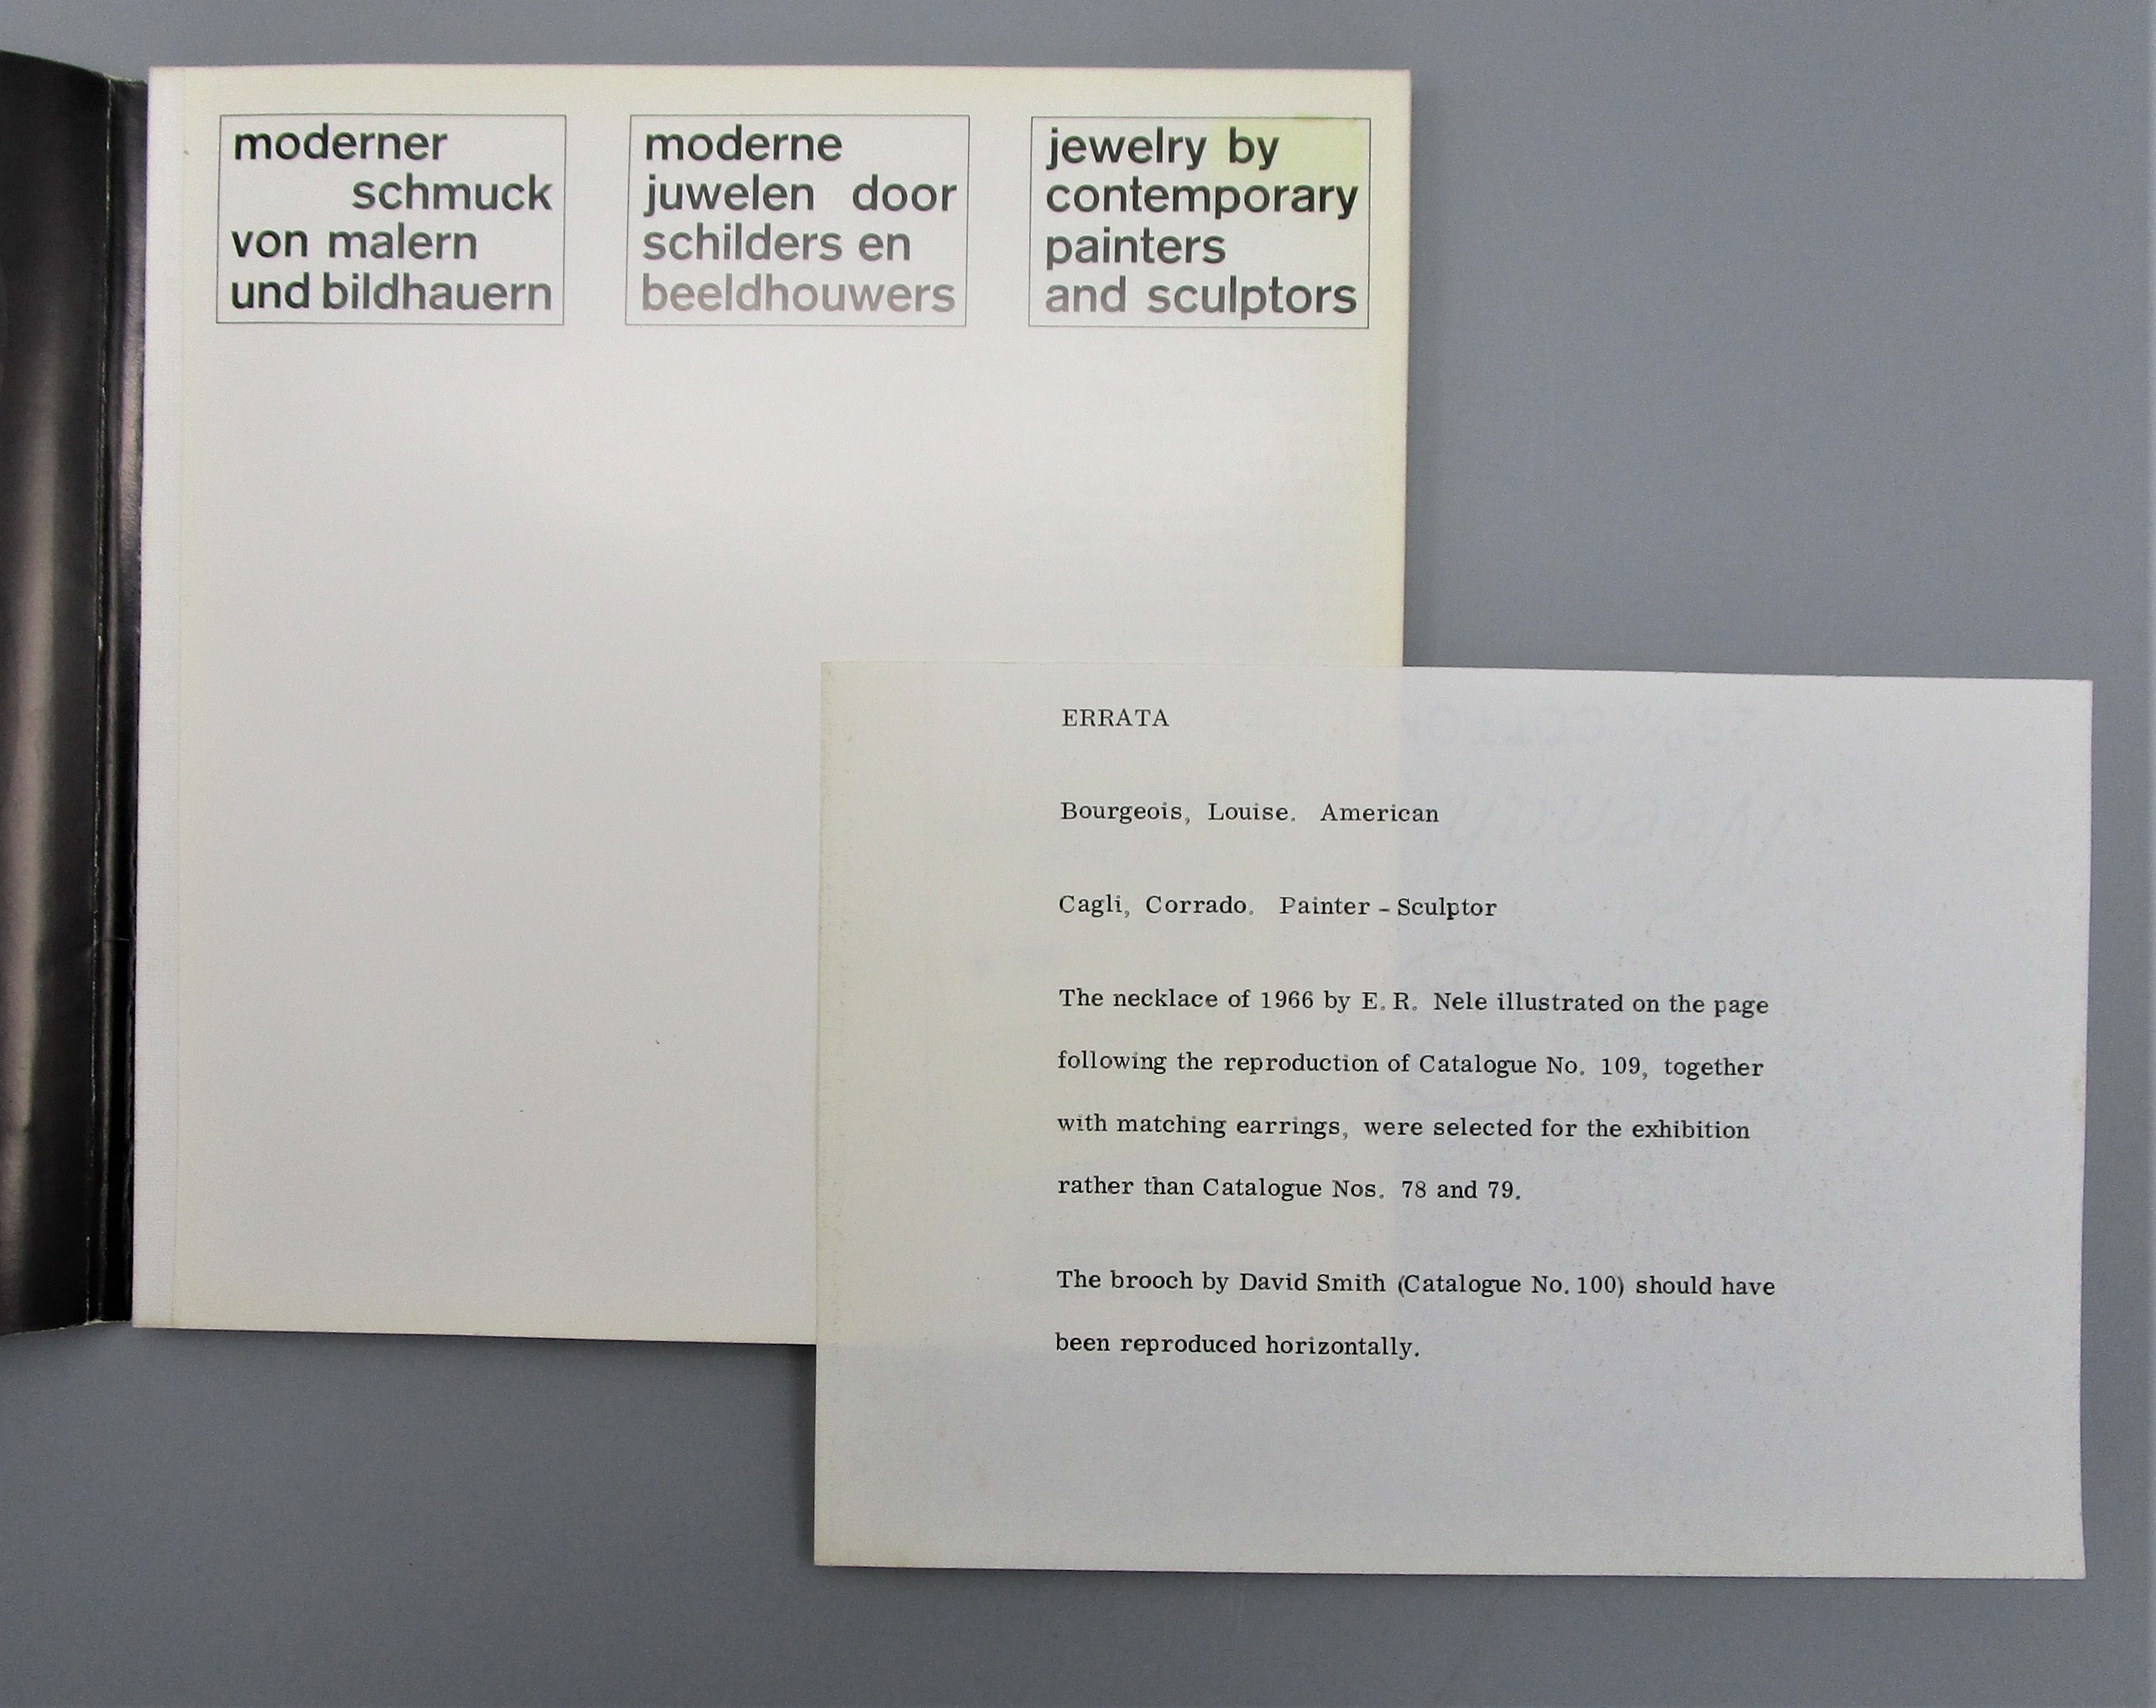 JEWELRY BY CONTEMPORARY PAINTERS AND SCULPTORS, by Museum of Modern Art of New York - 1966 [Errata Slip]